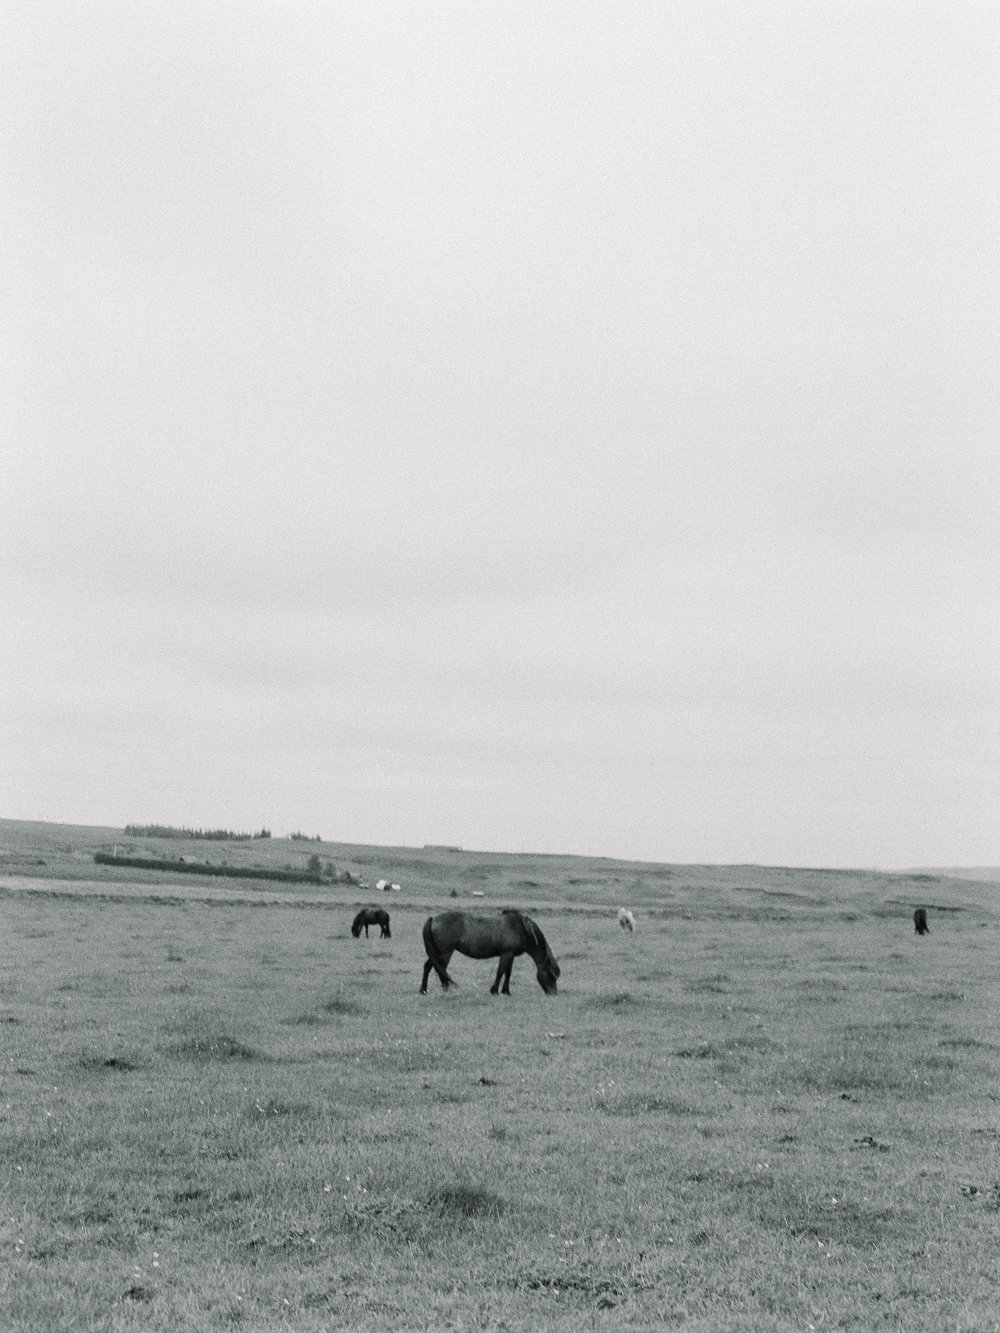 Horses in Iceland by Elli Jane now on Cottage Hill13.jpg